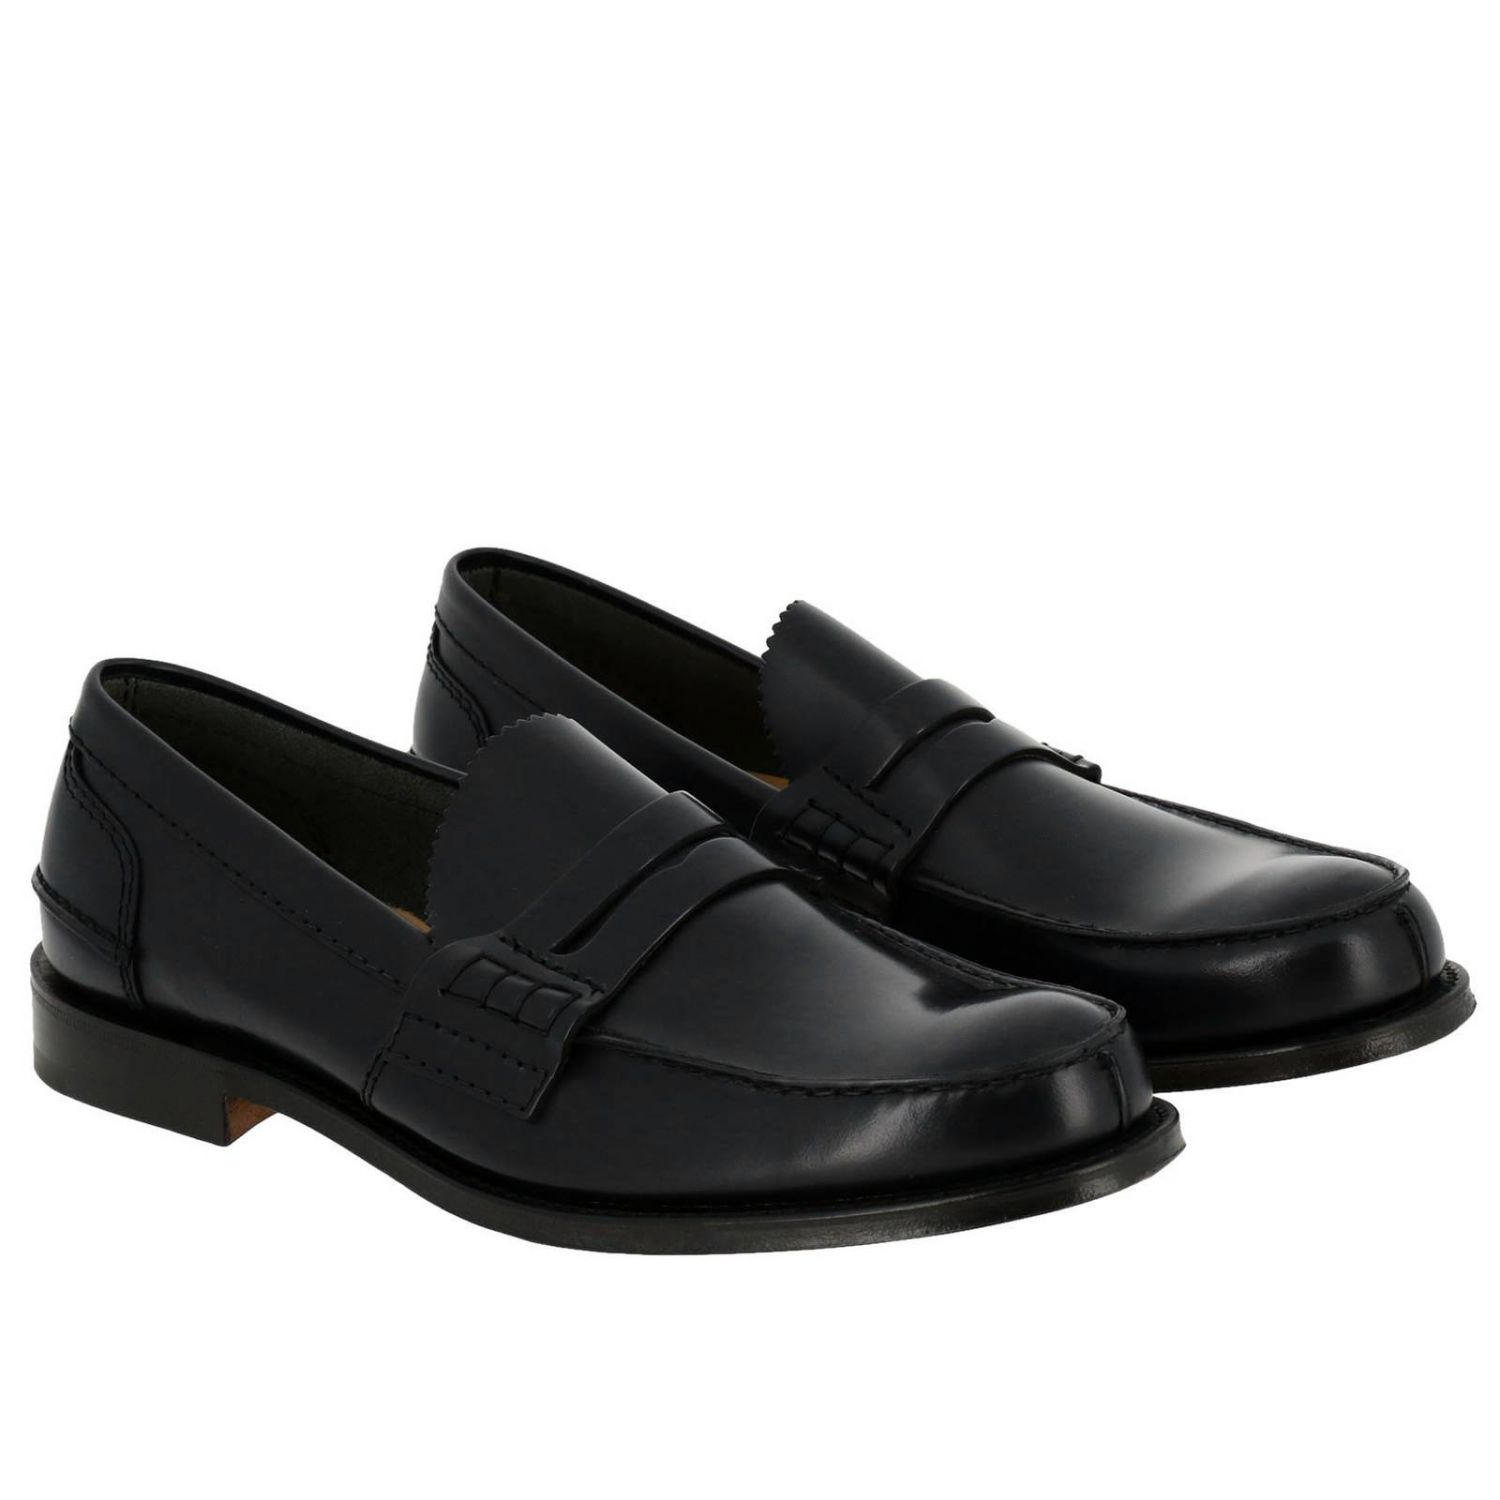 Loafers Church's: Shoes men Church's blue 2